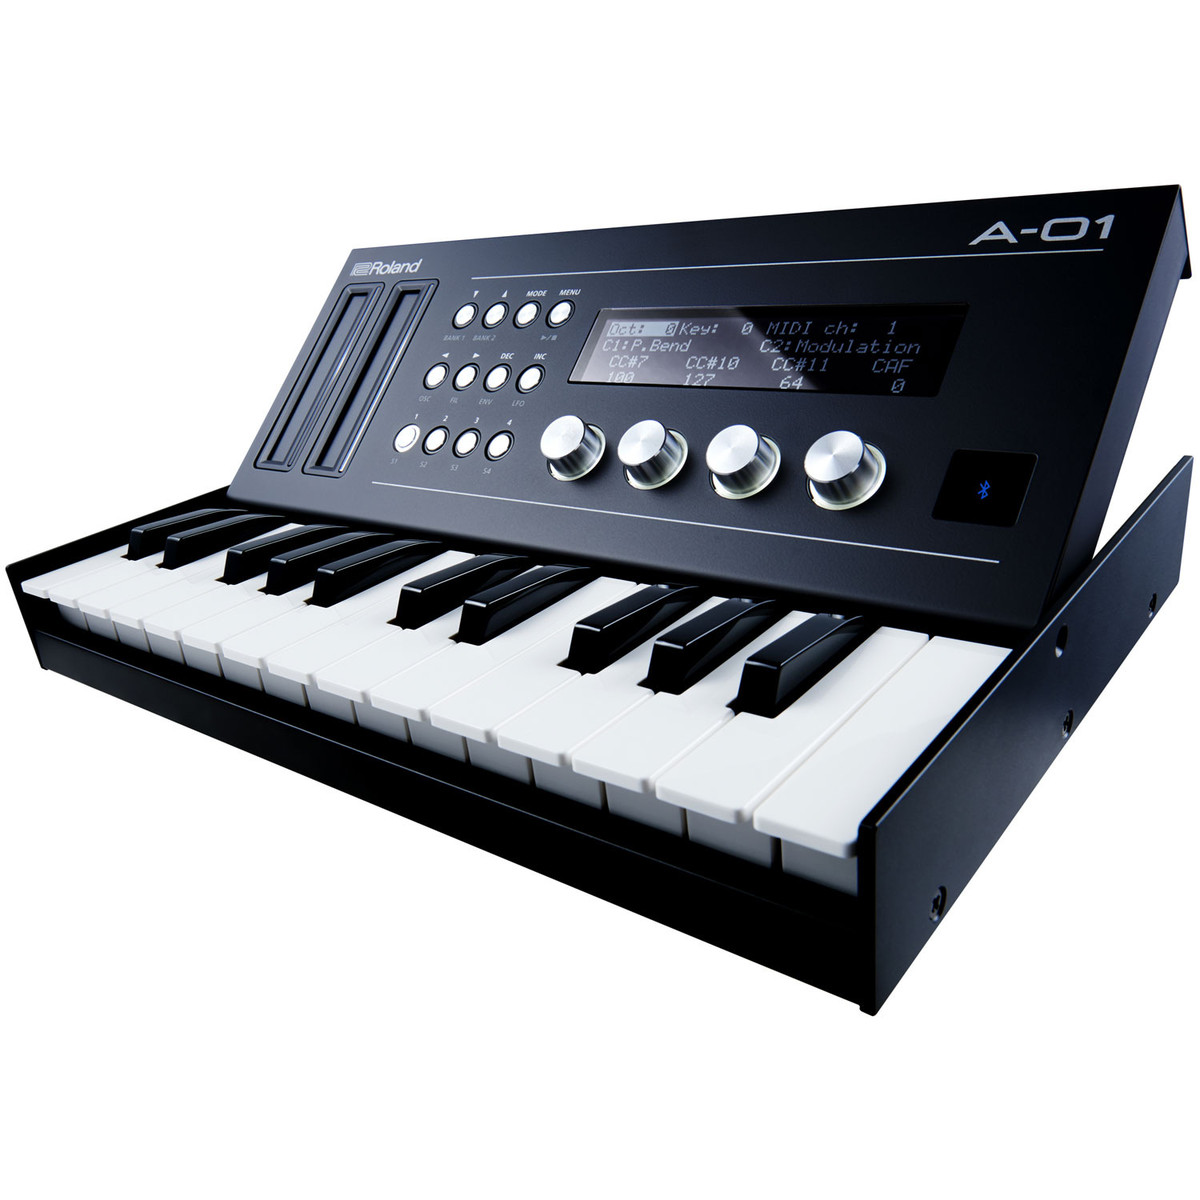 roland boutique a 01 midi controller and sound generator w keyboard at. Black Bedroom Furniture Sets. Home Design Ideas